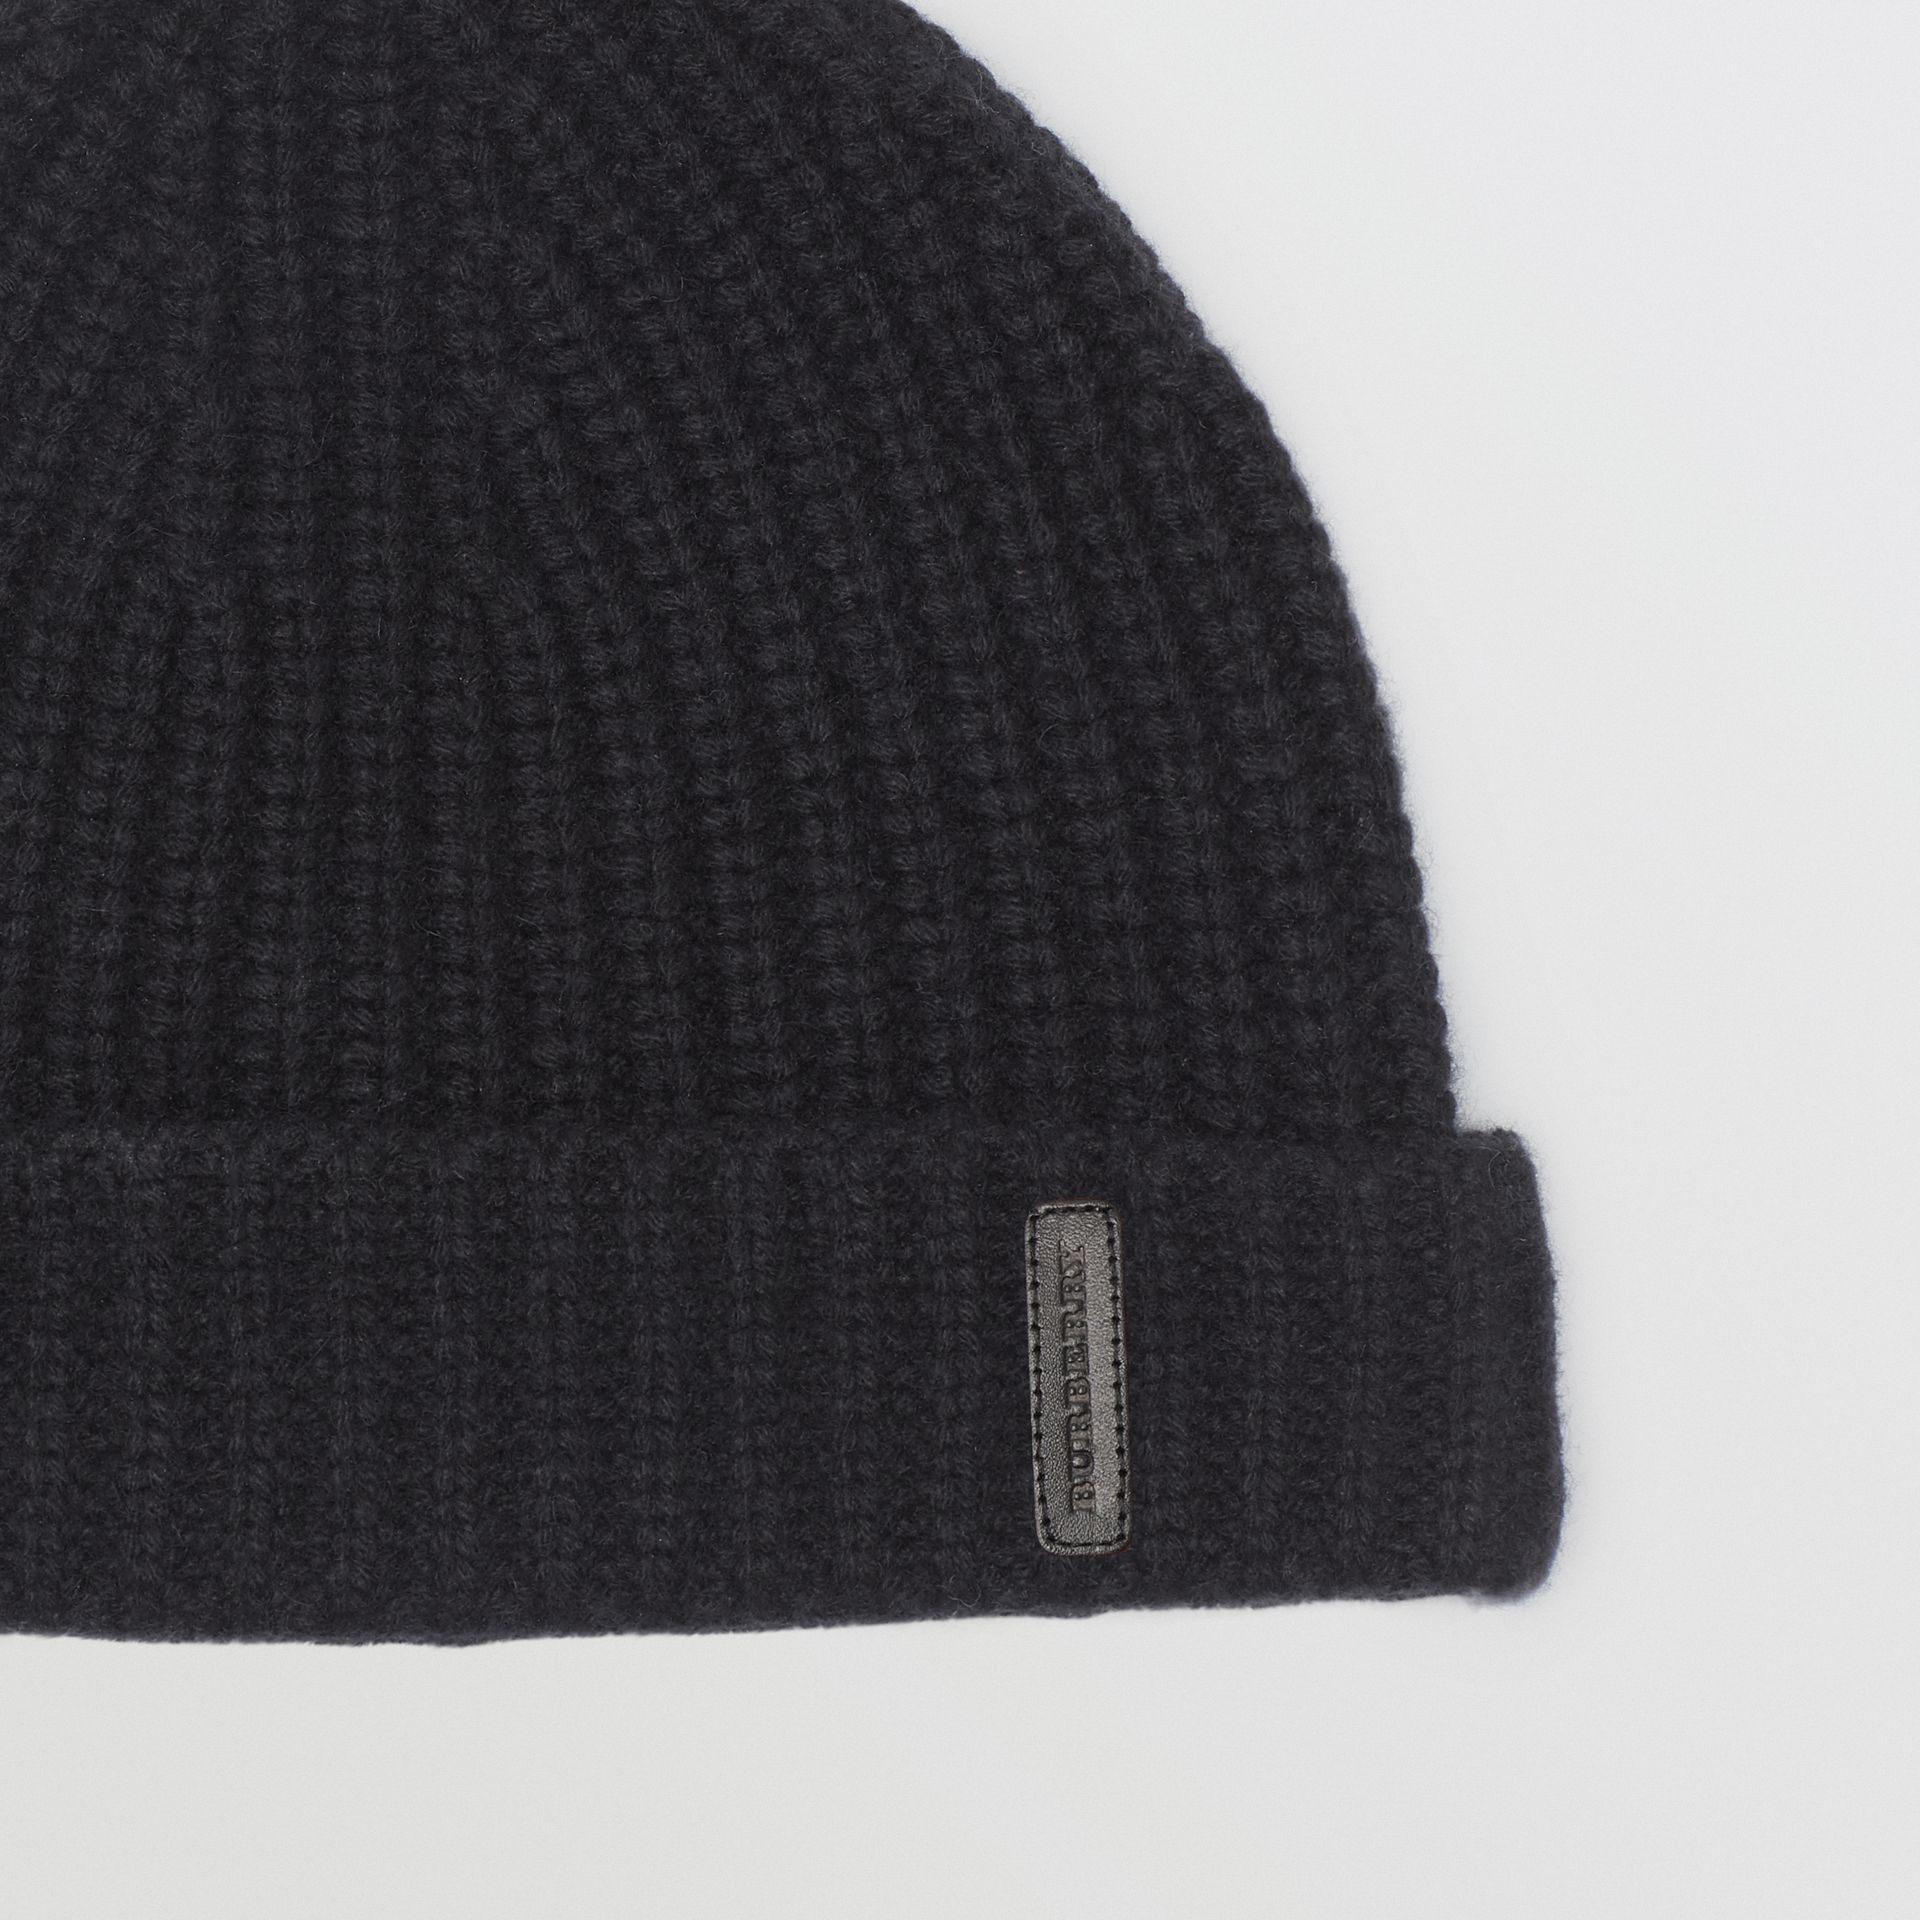 Rib Knit Cashmere Beanie in Black | Burberry Hong Kong - gallery image 1